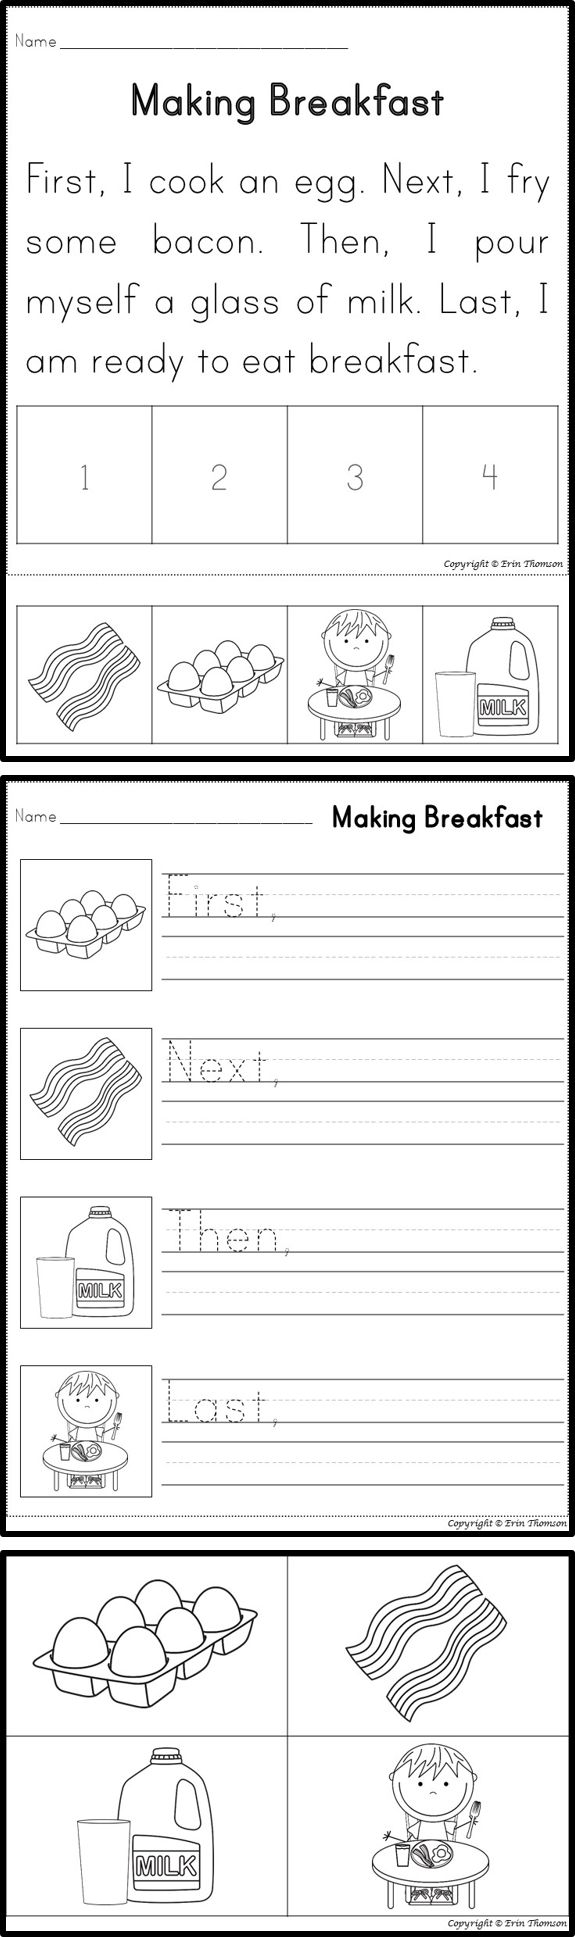 Uncategorized Sequence Of Events Worksheet best 25 sequencing worksheets ideas on pinterest stories first next then last set 3